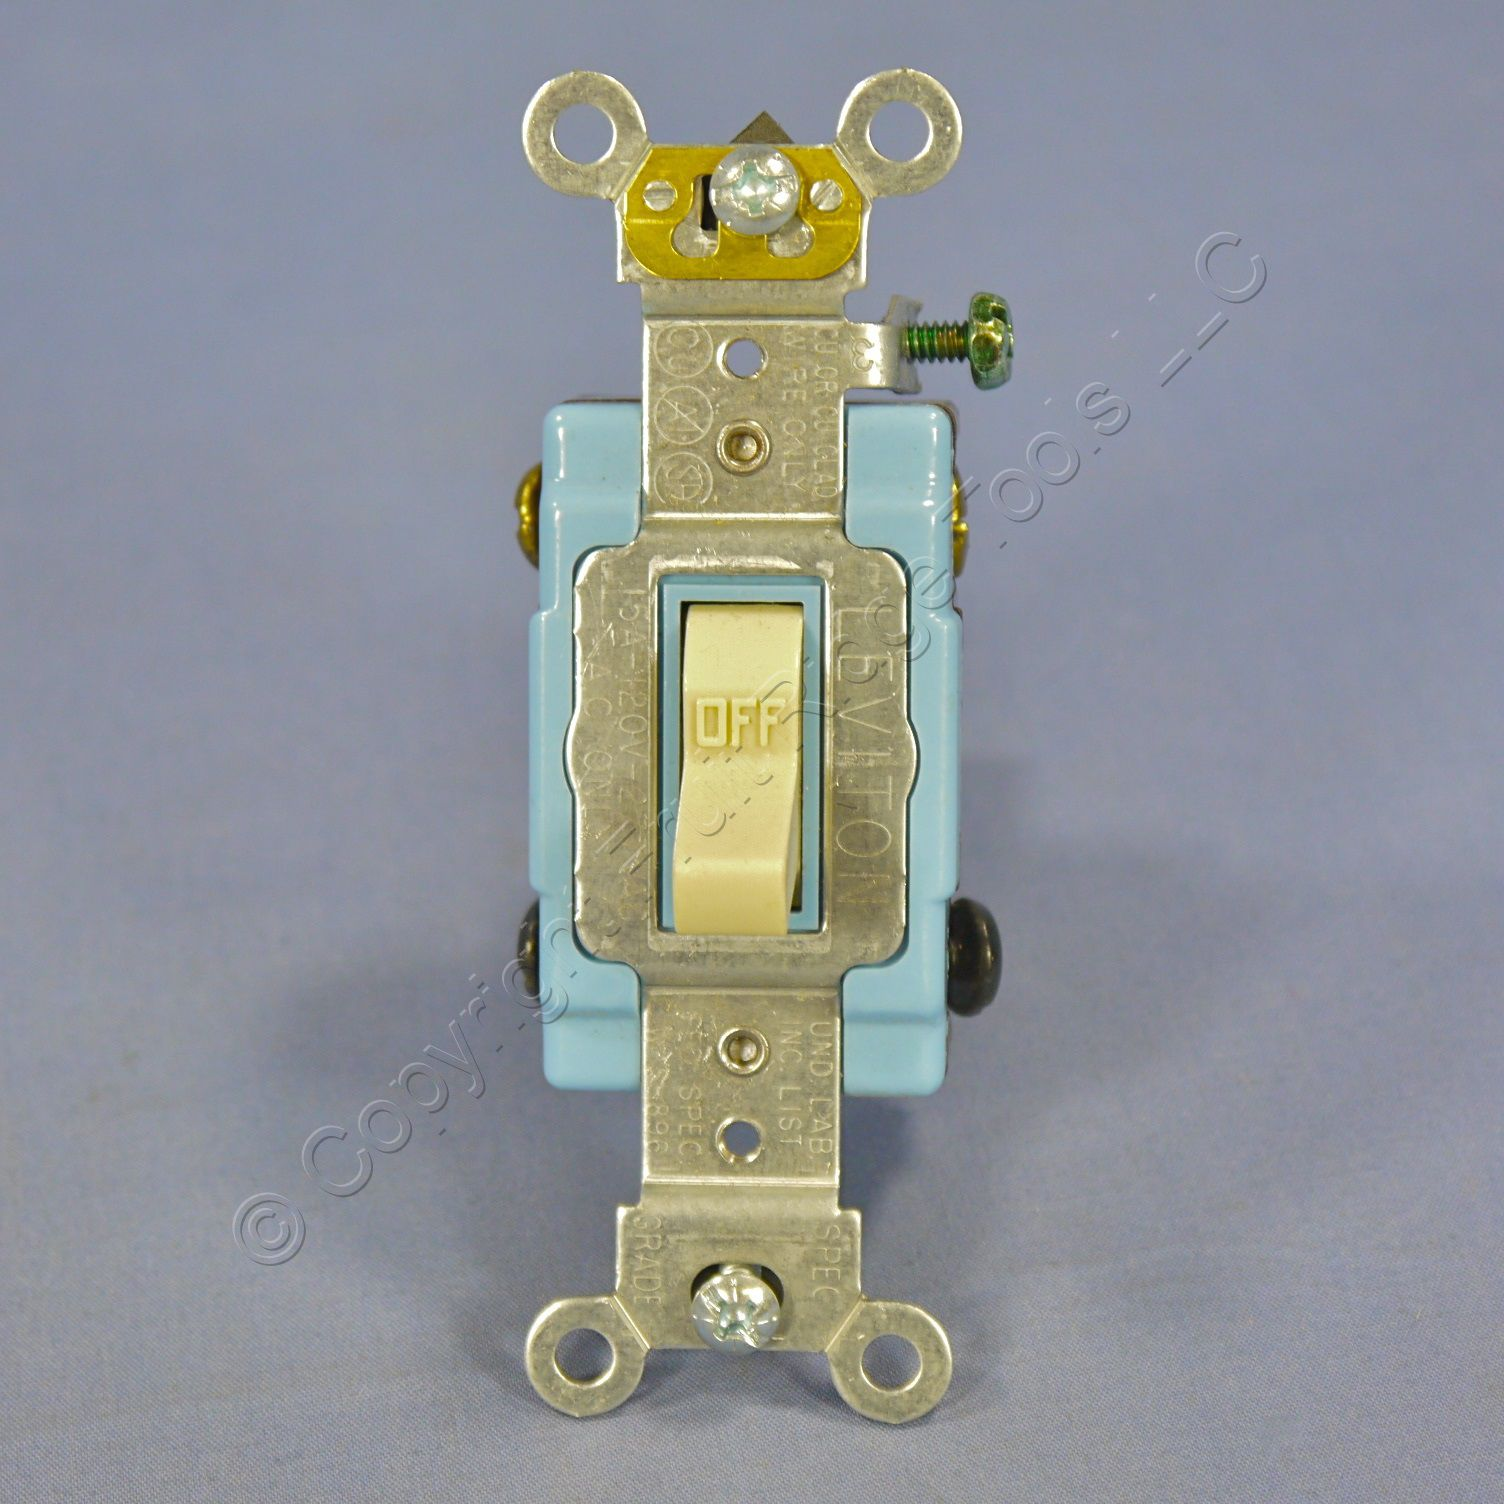 Leviton Ivory Industrial Toggle Wall Light Switch Double Pole 15a Electrical Outlets Switches Gfi Outlet Bulk 1202 2i